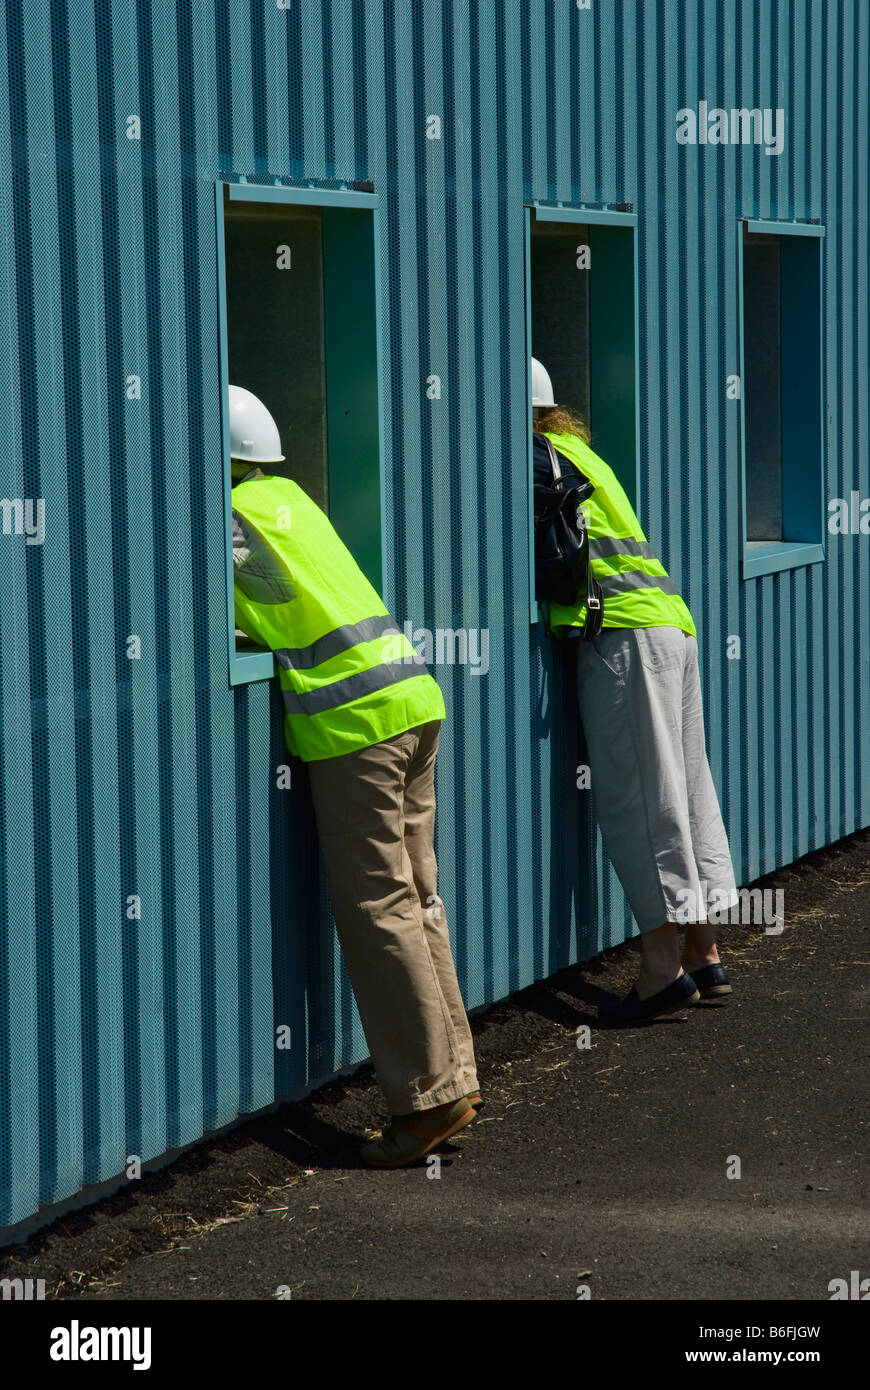 Visitors wearing hardhats and safety vests looking into the sanitation hall at the Sondermuelldeponie or hazardous - Stock Image